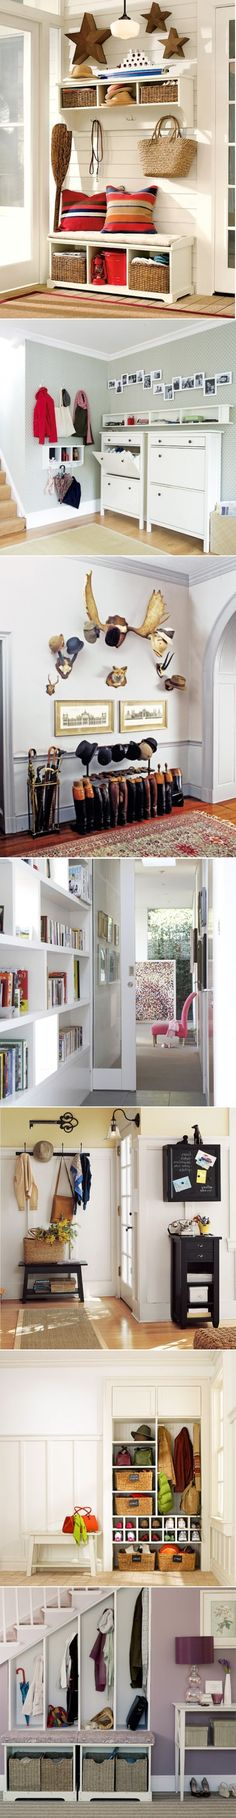 DIY mudroom and hallway storage ideas using organisation tips and ideas to suit your family's budget, space and needs